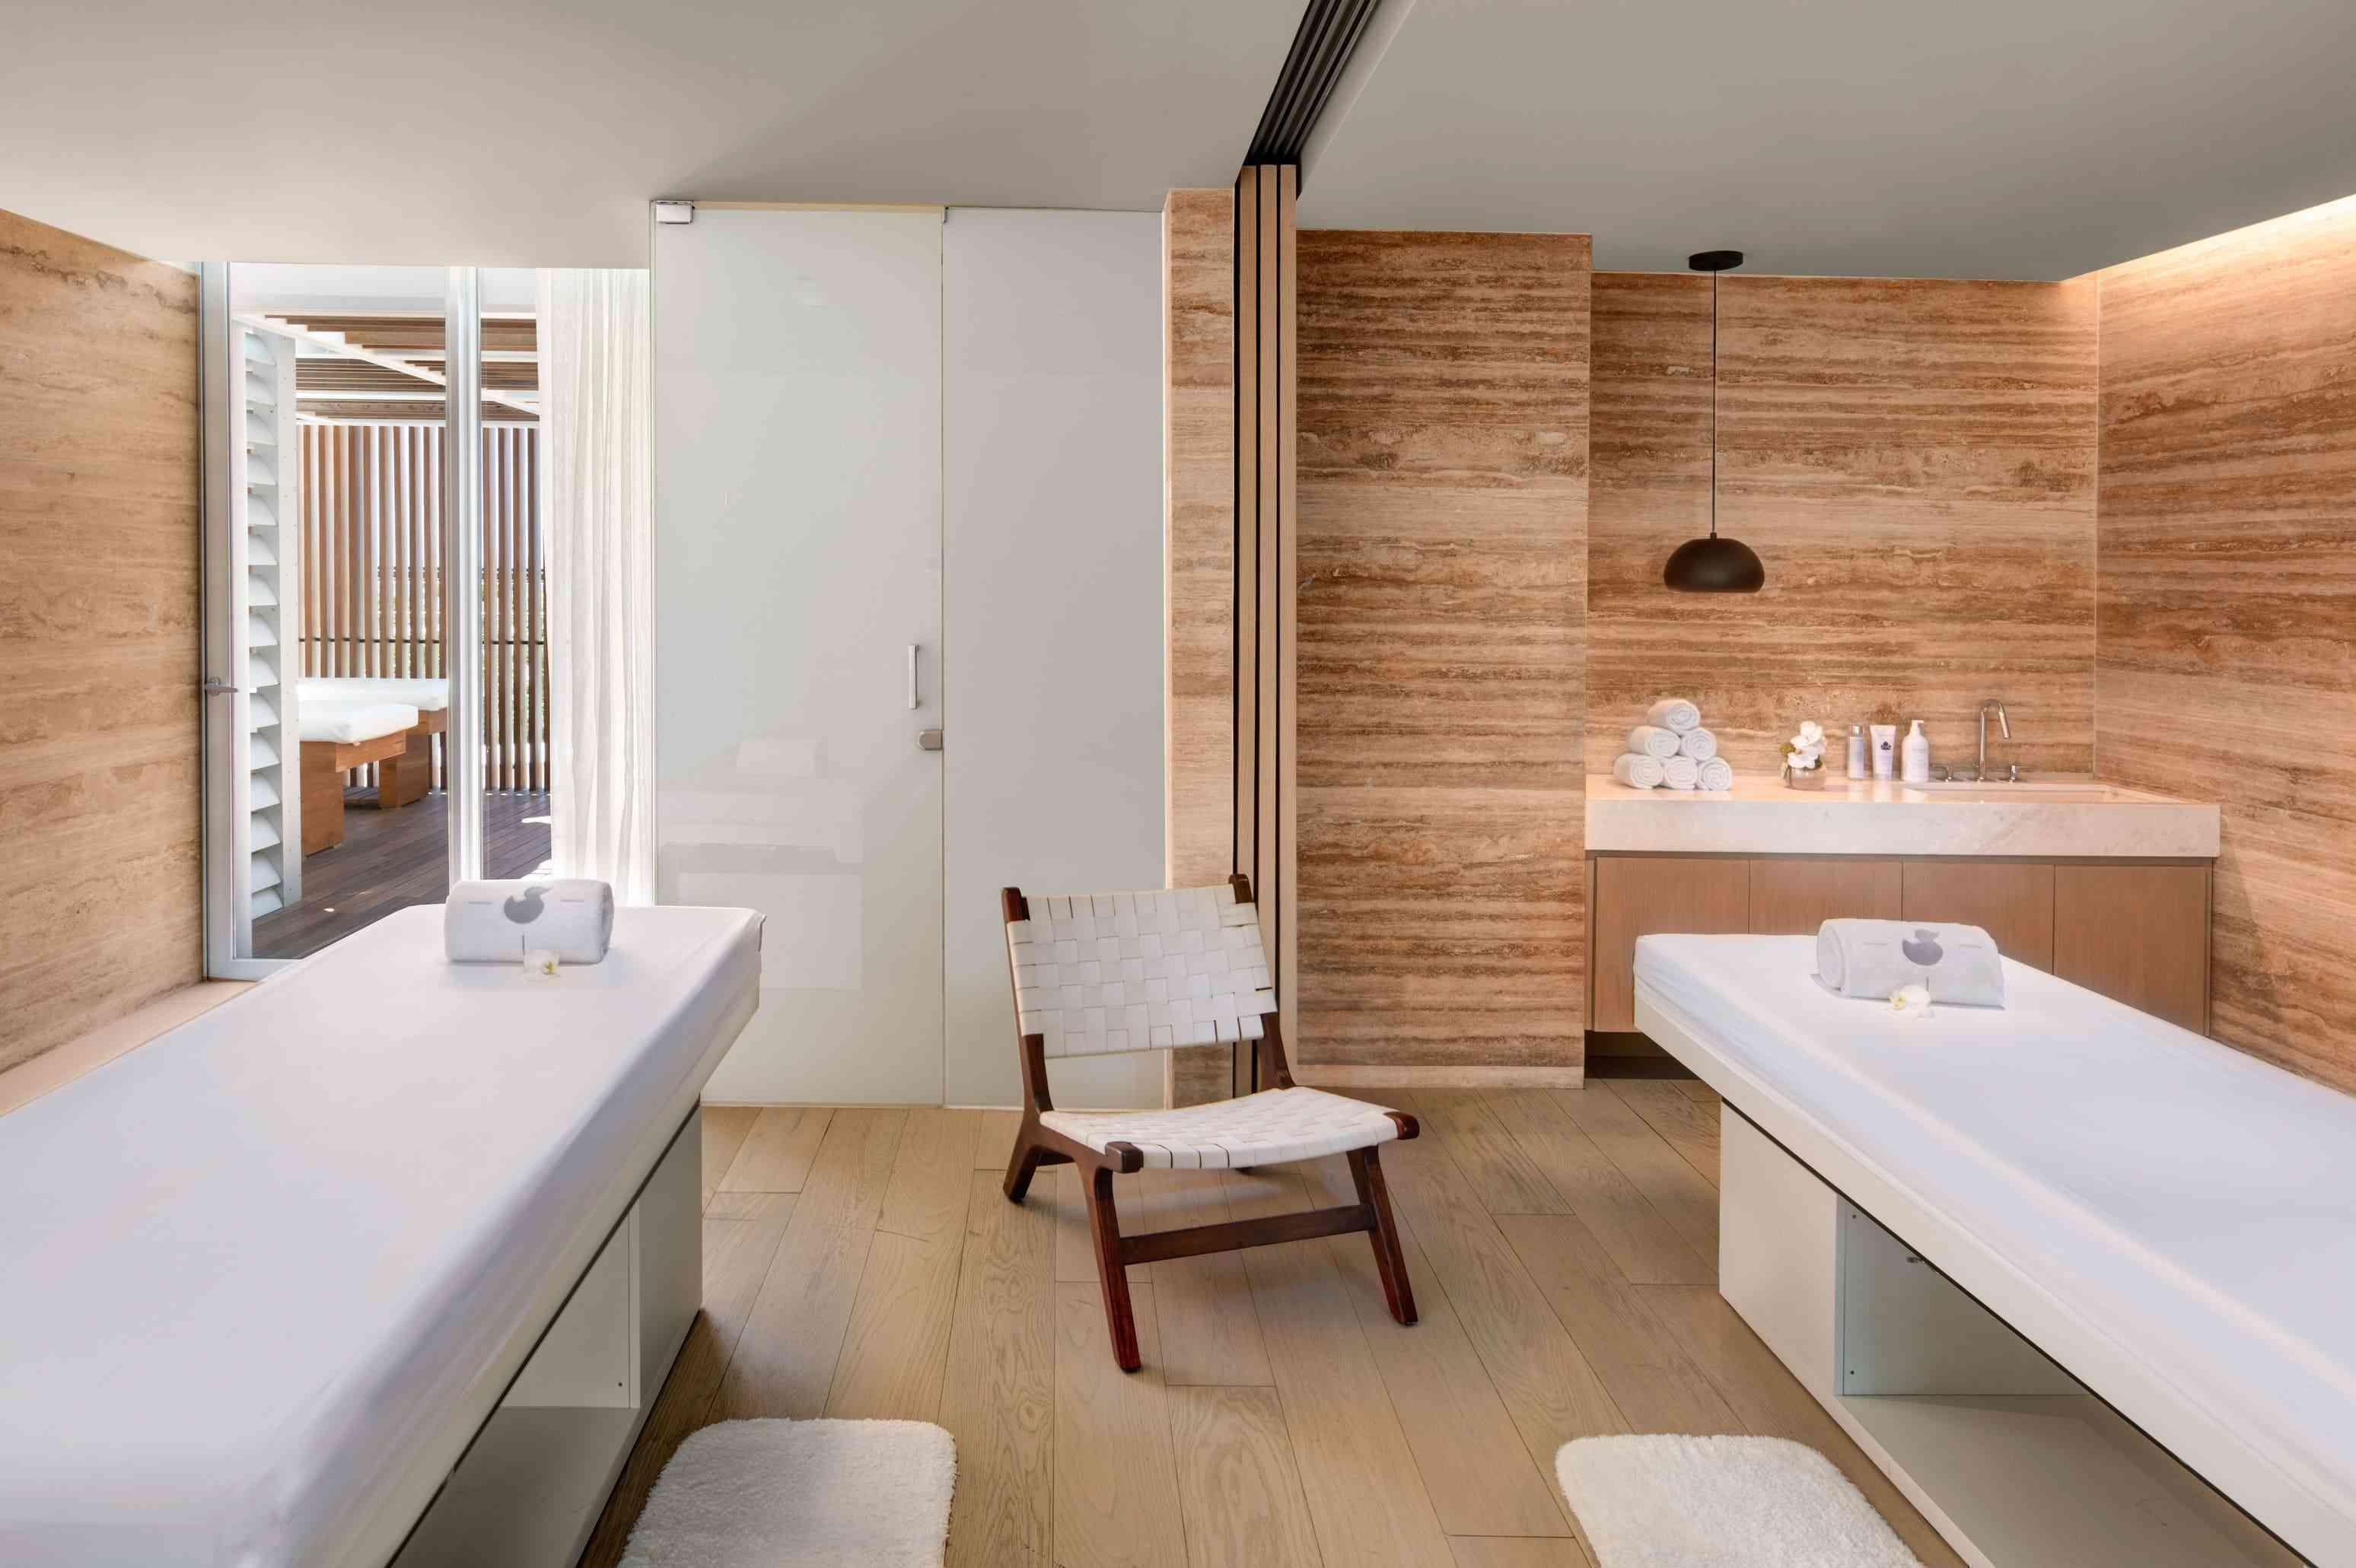 Room with two massage tables